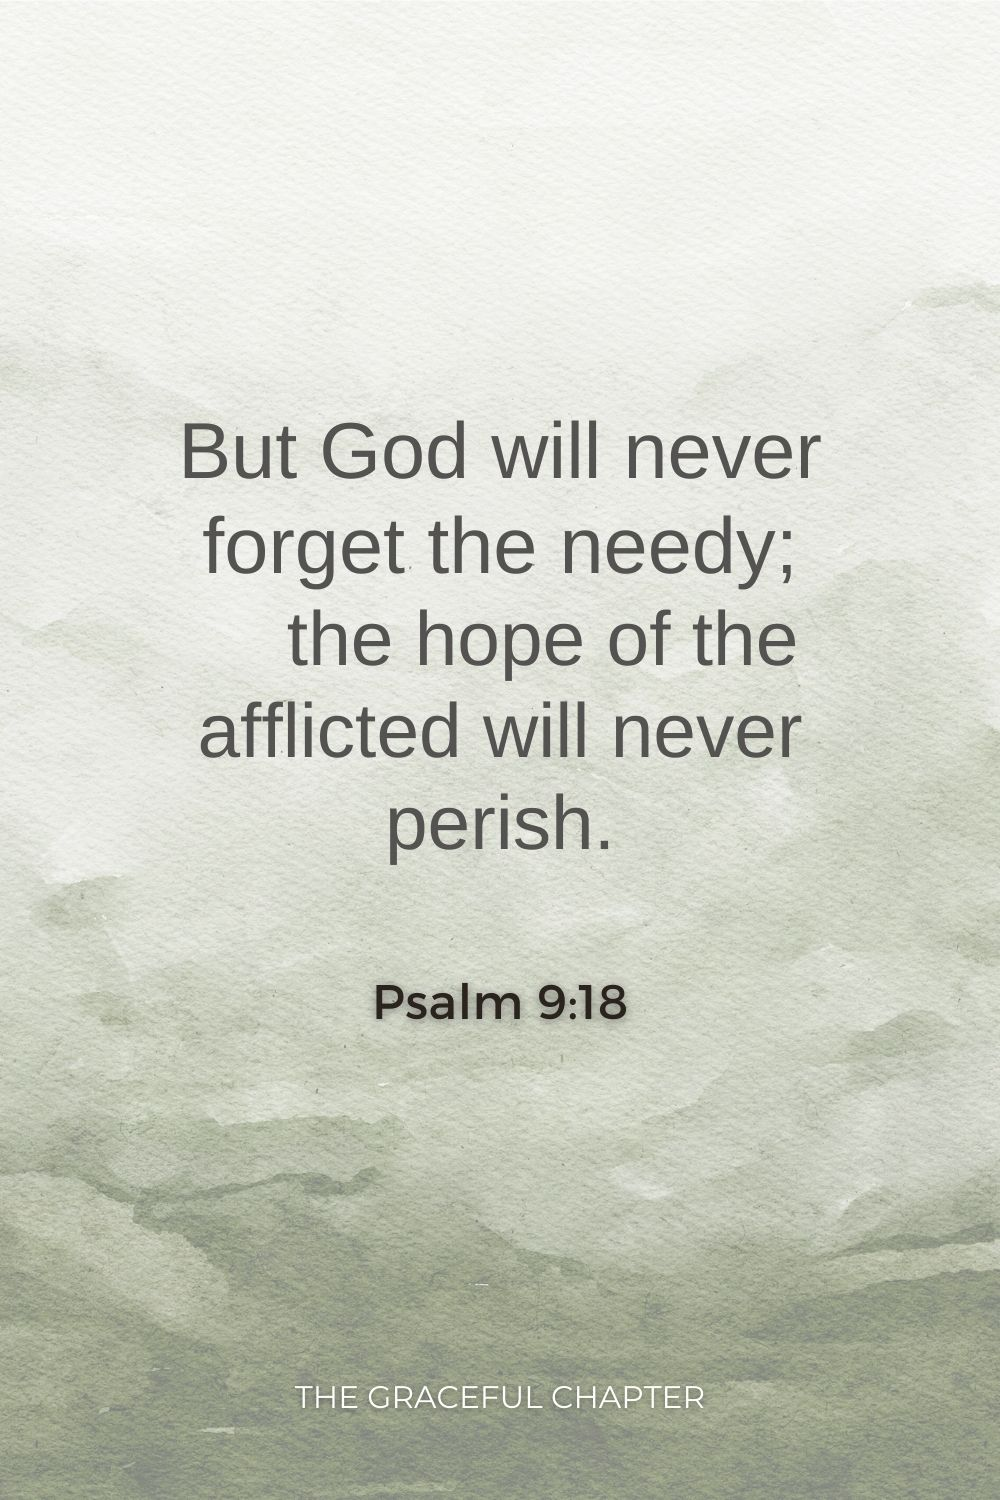 But God will never forget the needy;     the hope of the afflicted will never perish. Psalm 9:18